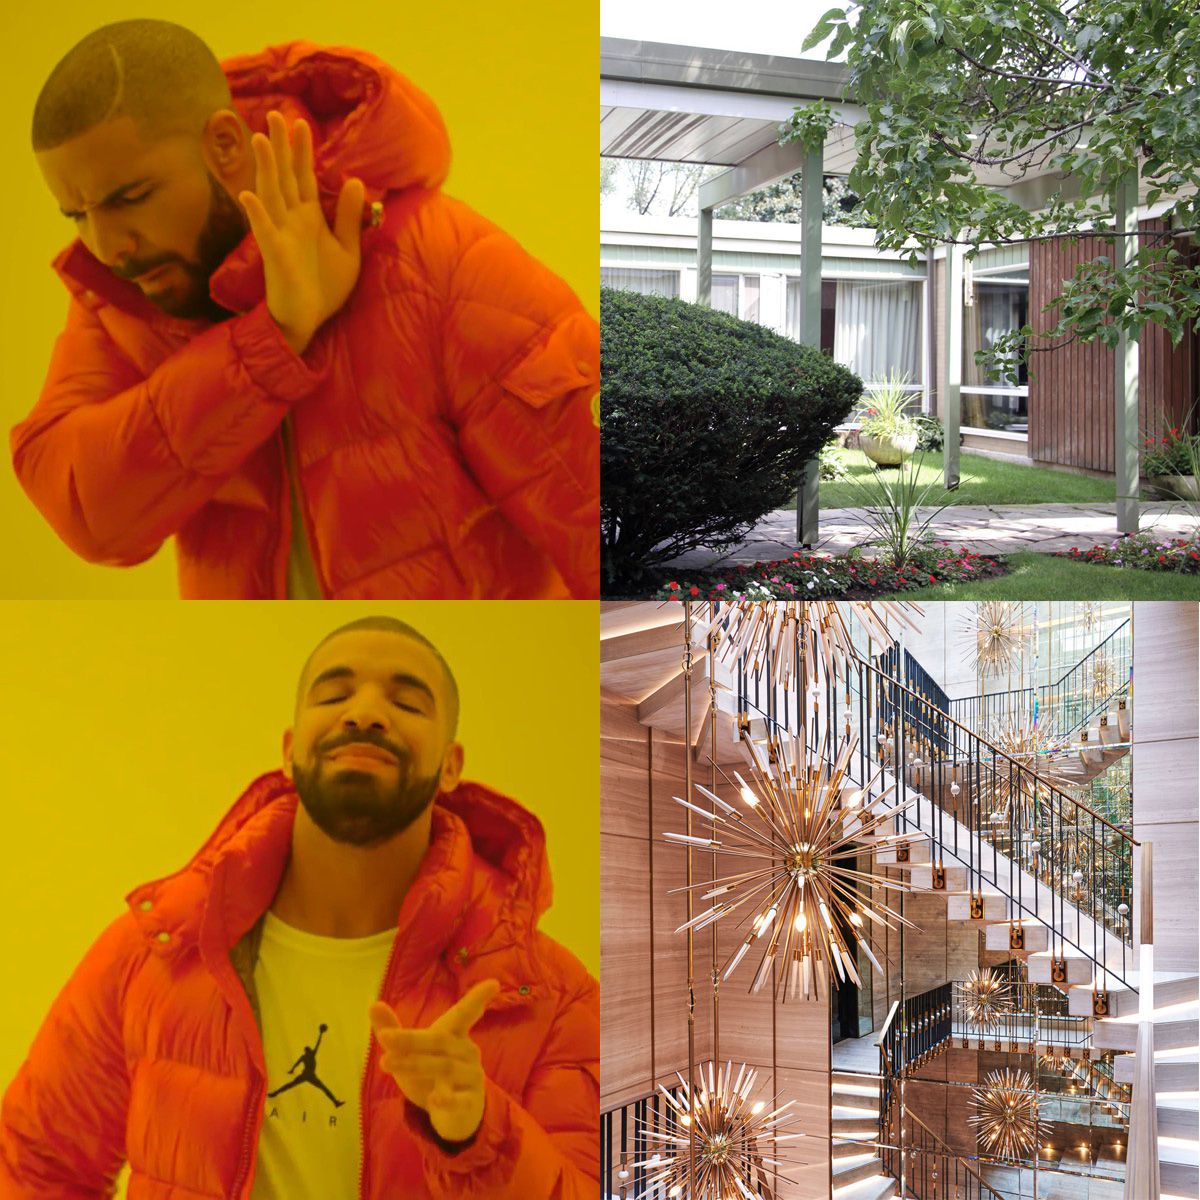 A collage of four photos: two with a man in an orange jacket, one with an exterior of a house pictured, another with an interior that has a winding staircase and spiked chandeliers.